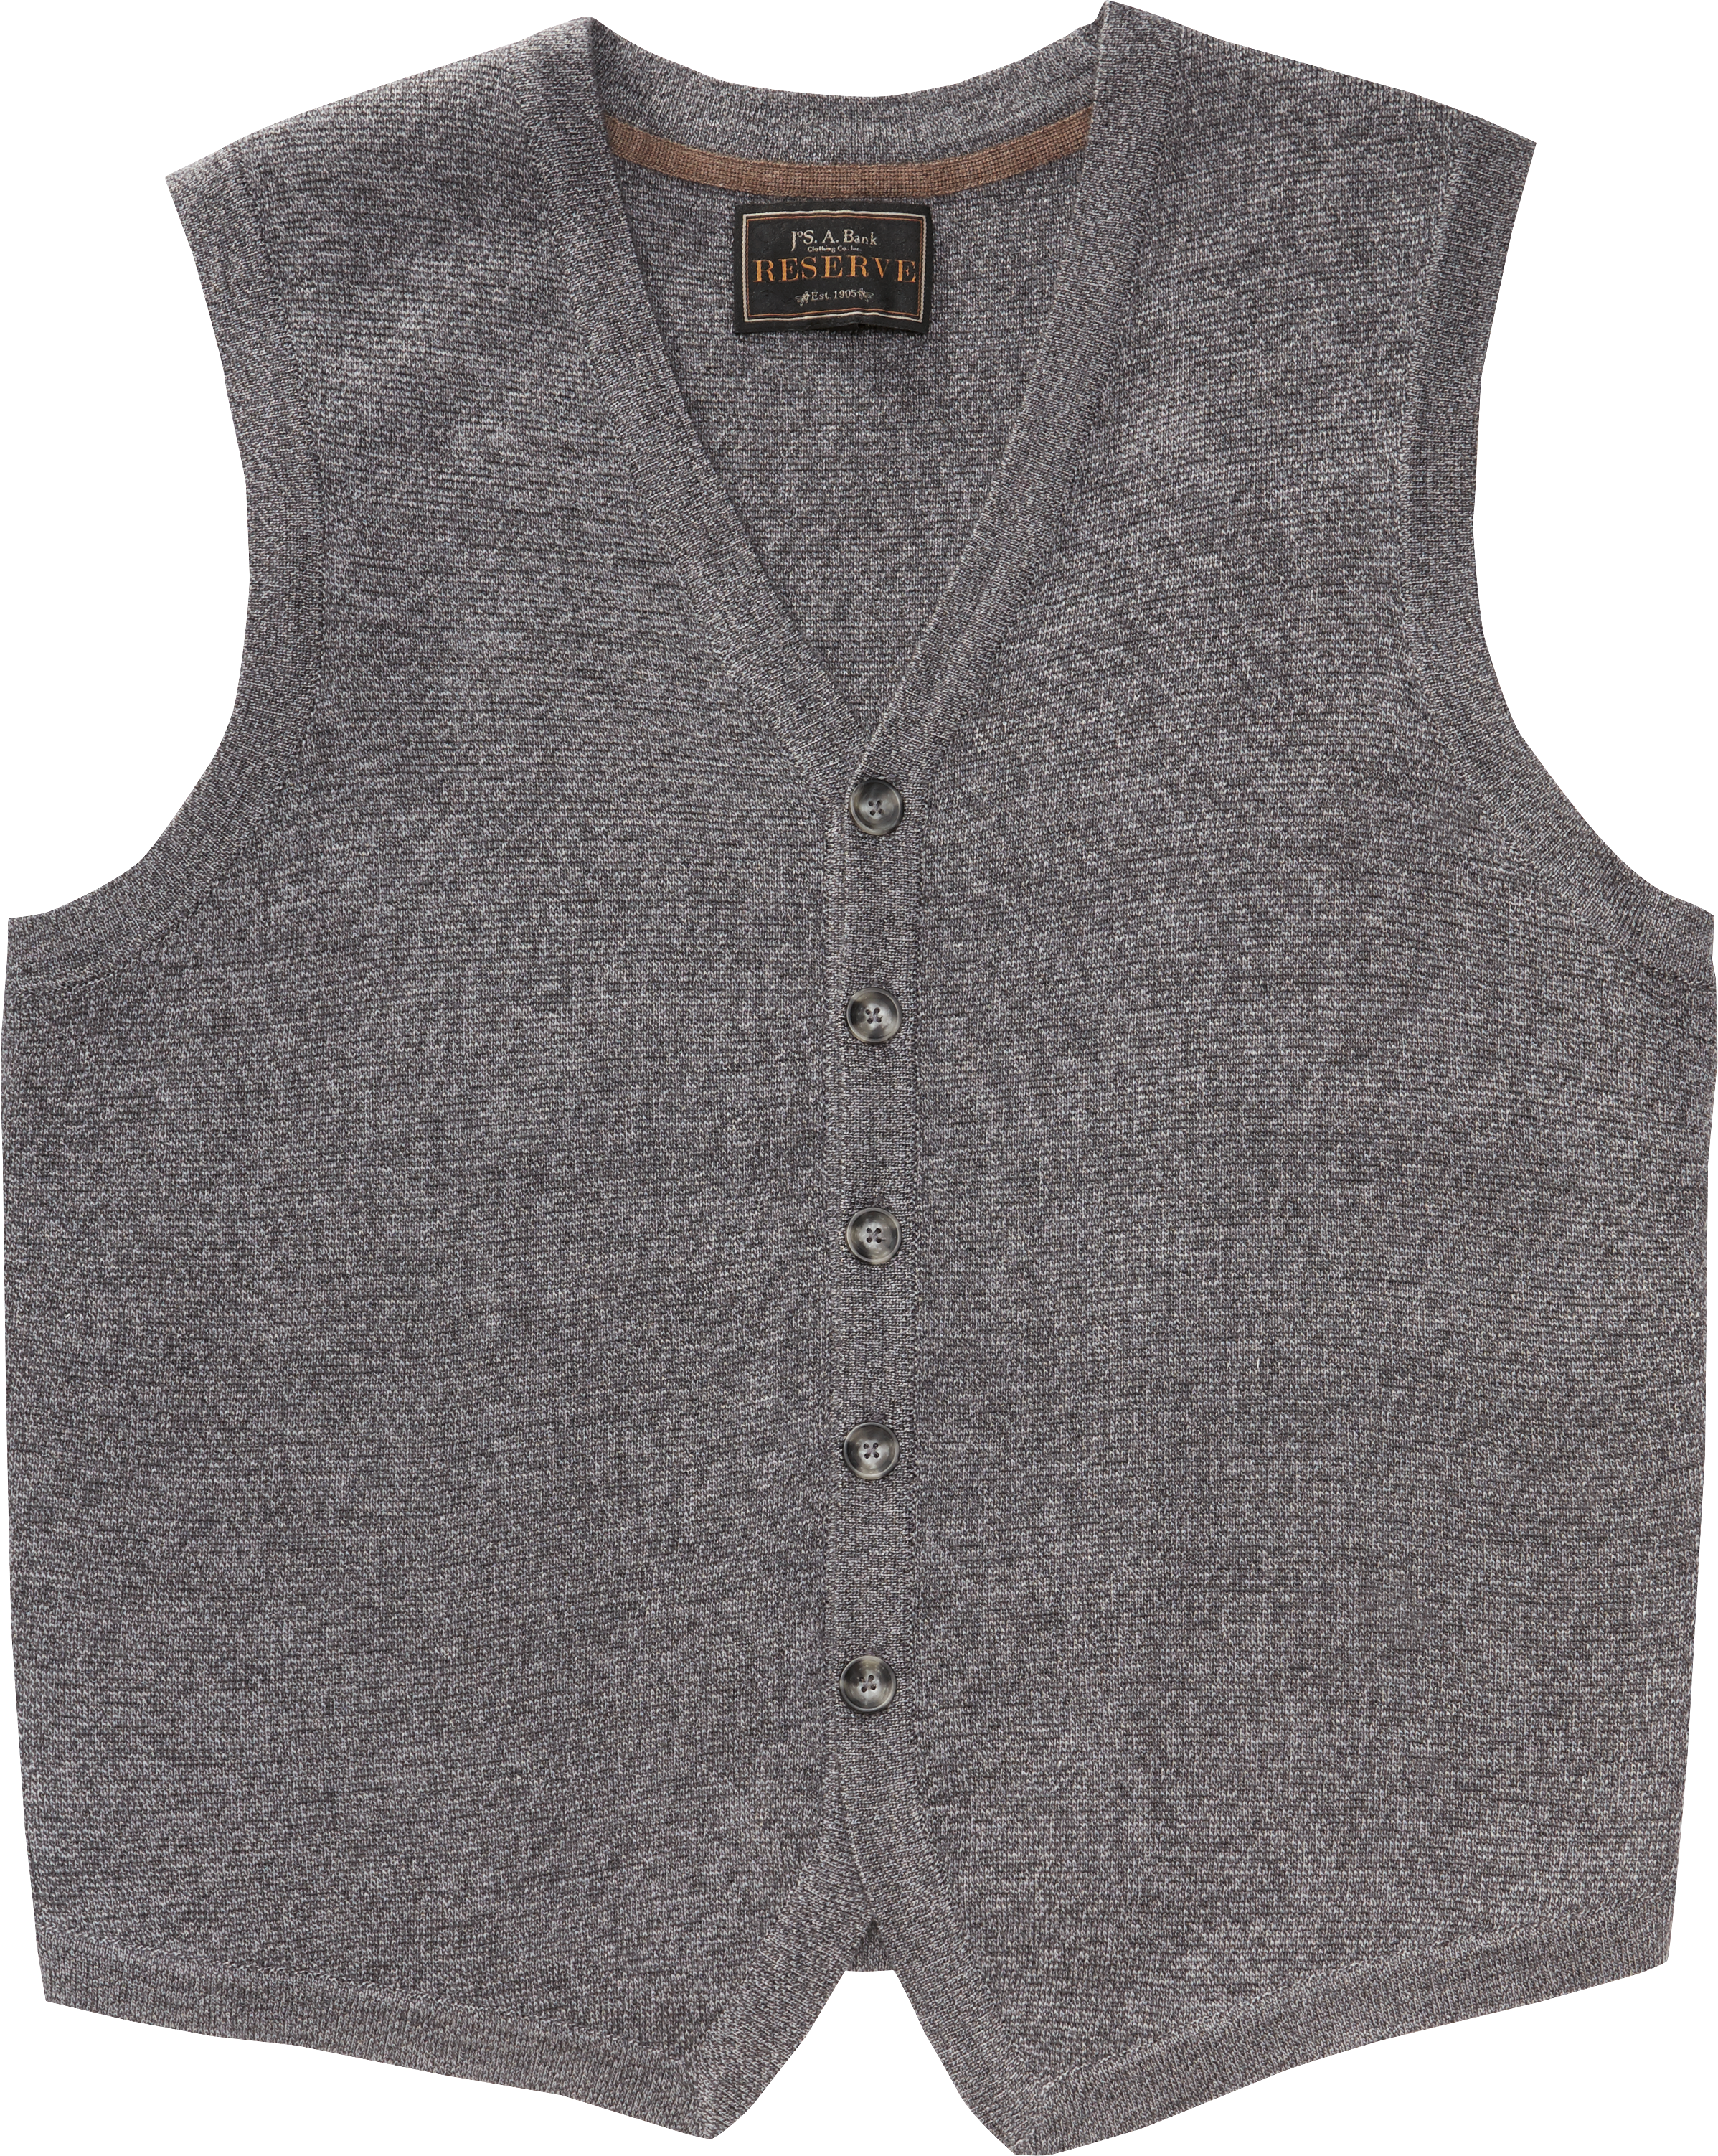 56aeb3250 Reserve Collection Merino Wool Blend Button Front Sweater Vest CLEARANCE